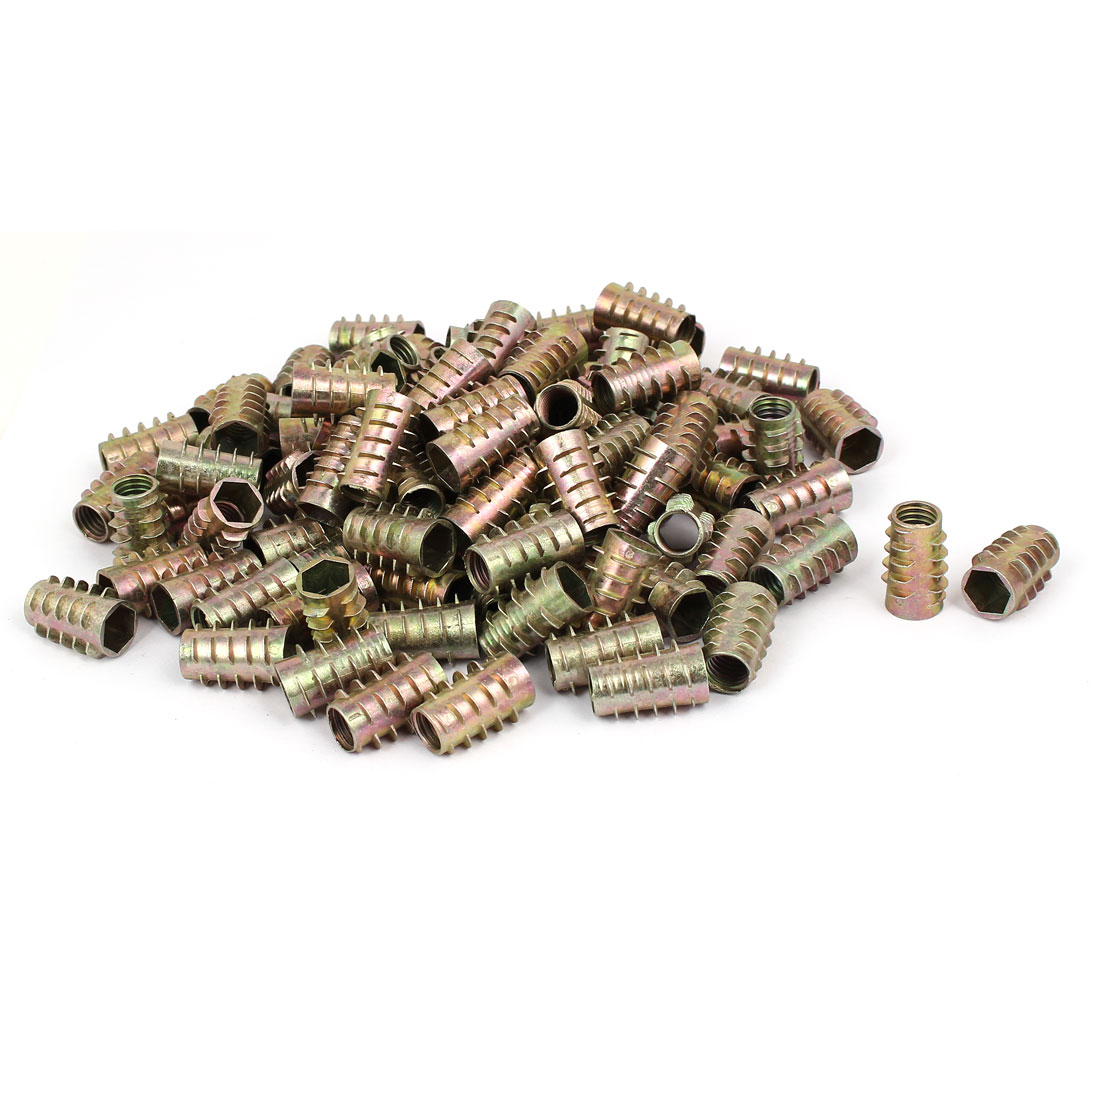 Wood Furniture Zinc Alloy Hex Socket Insert Screws E-Nuts M10x25mm 100pcs